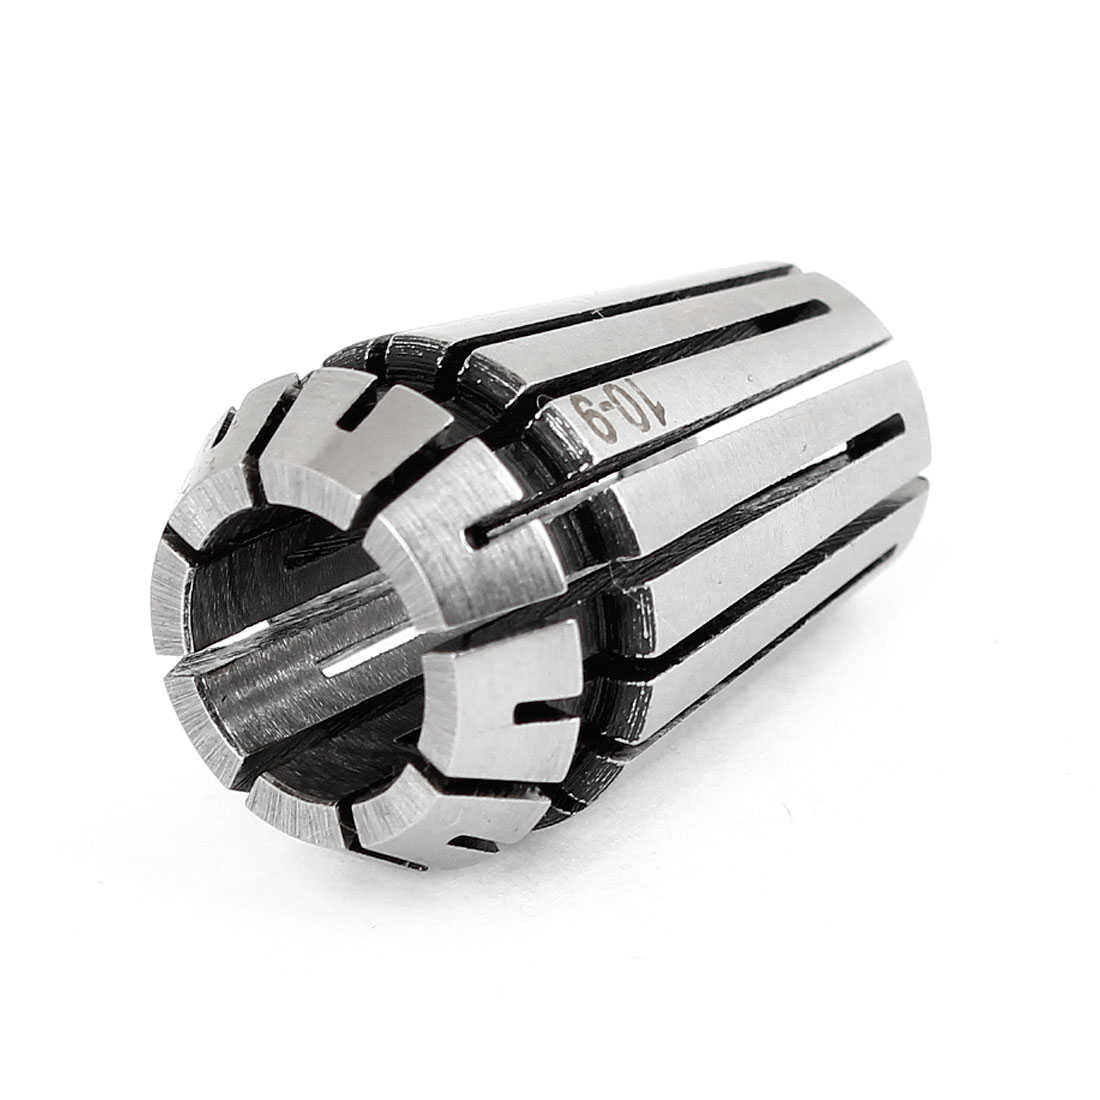 Unique Bargains Clamping Range 10-9mm ER16 Precision Spring Collet Socket Tapping Part